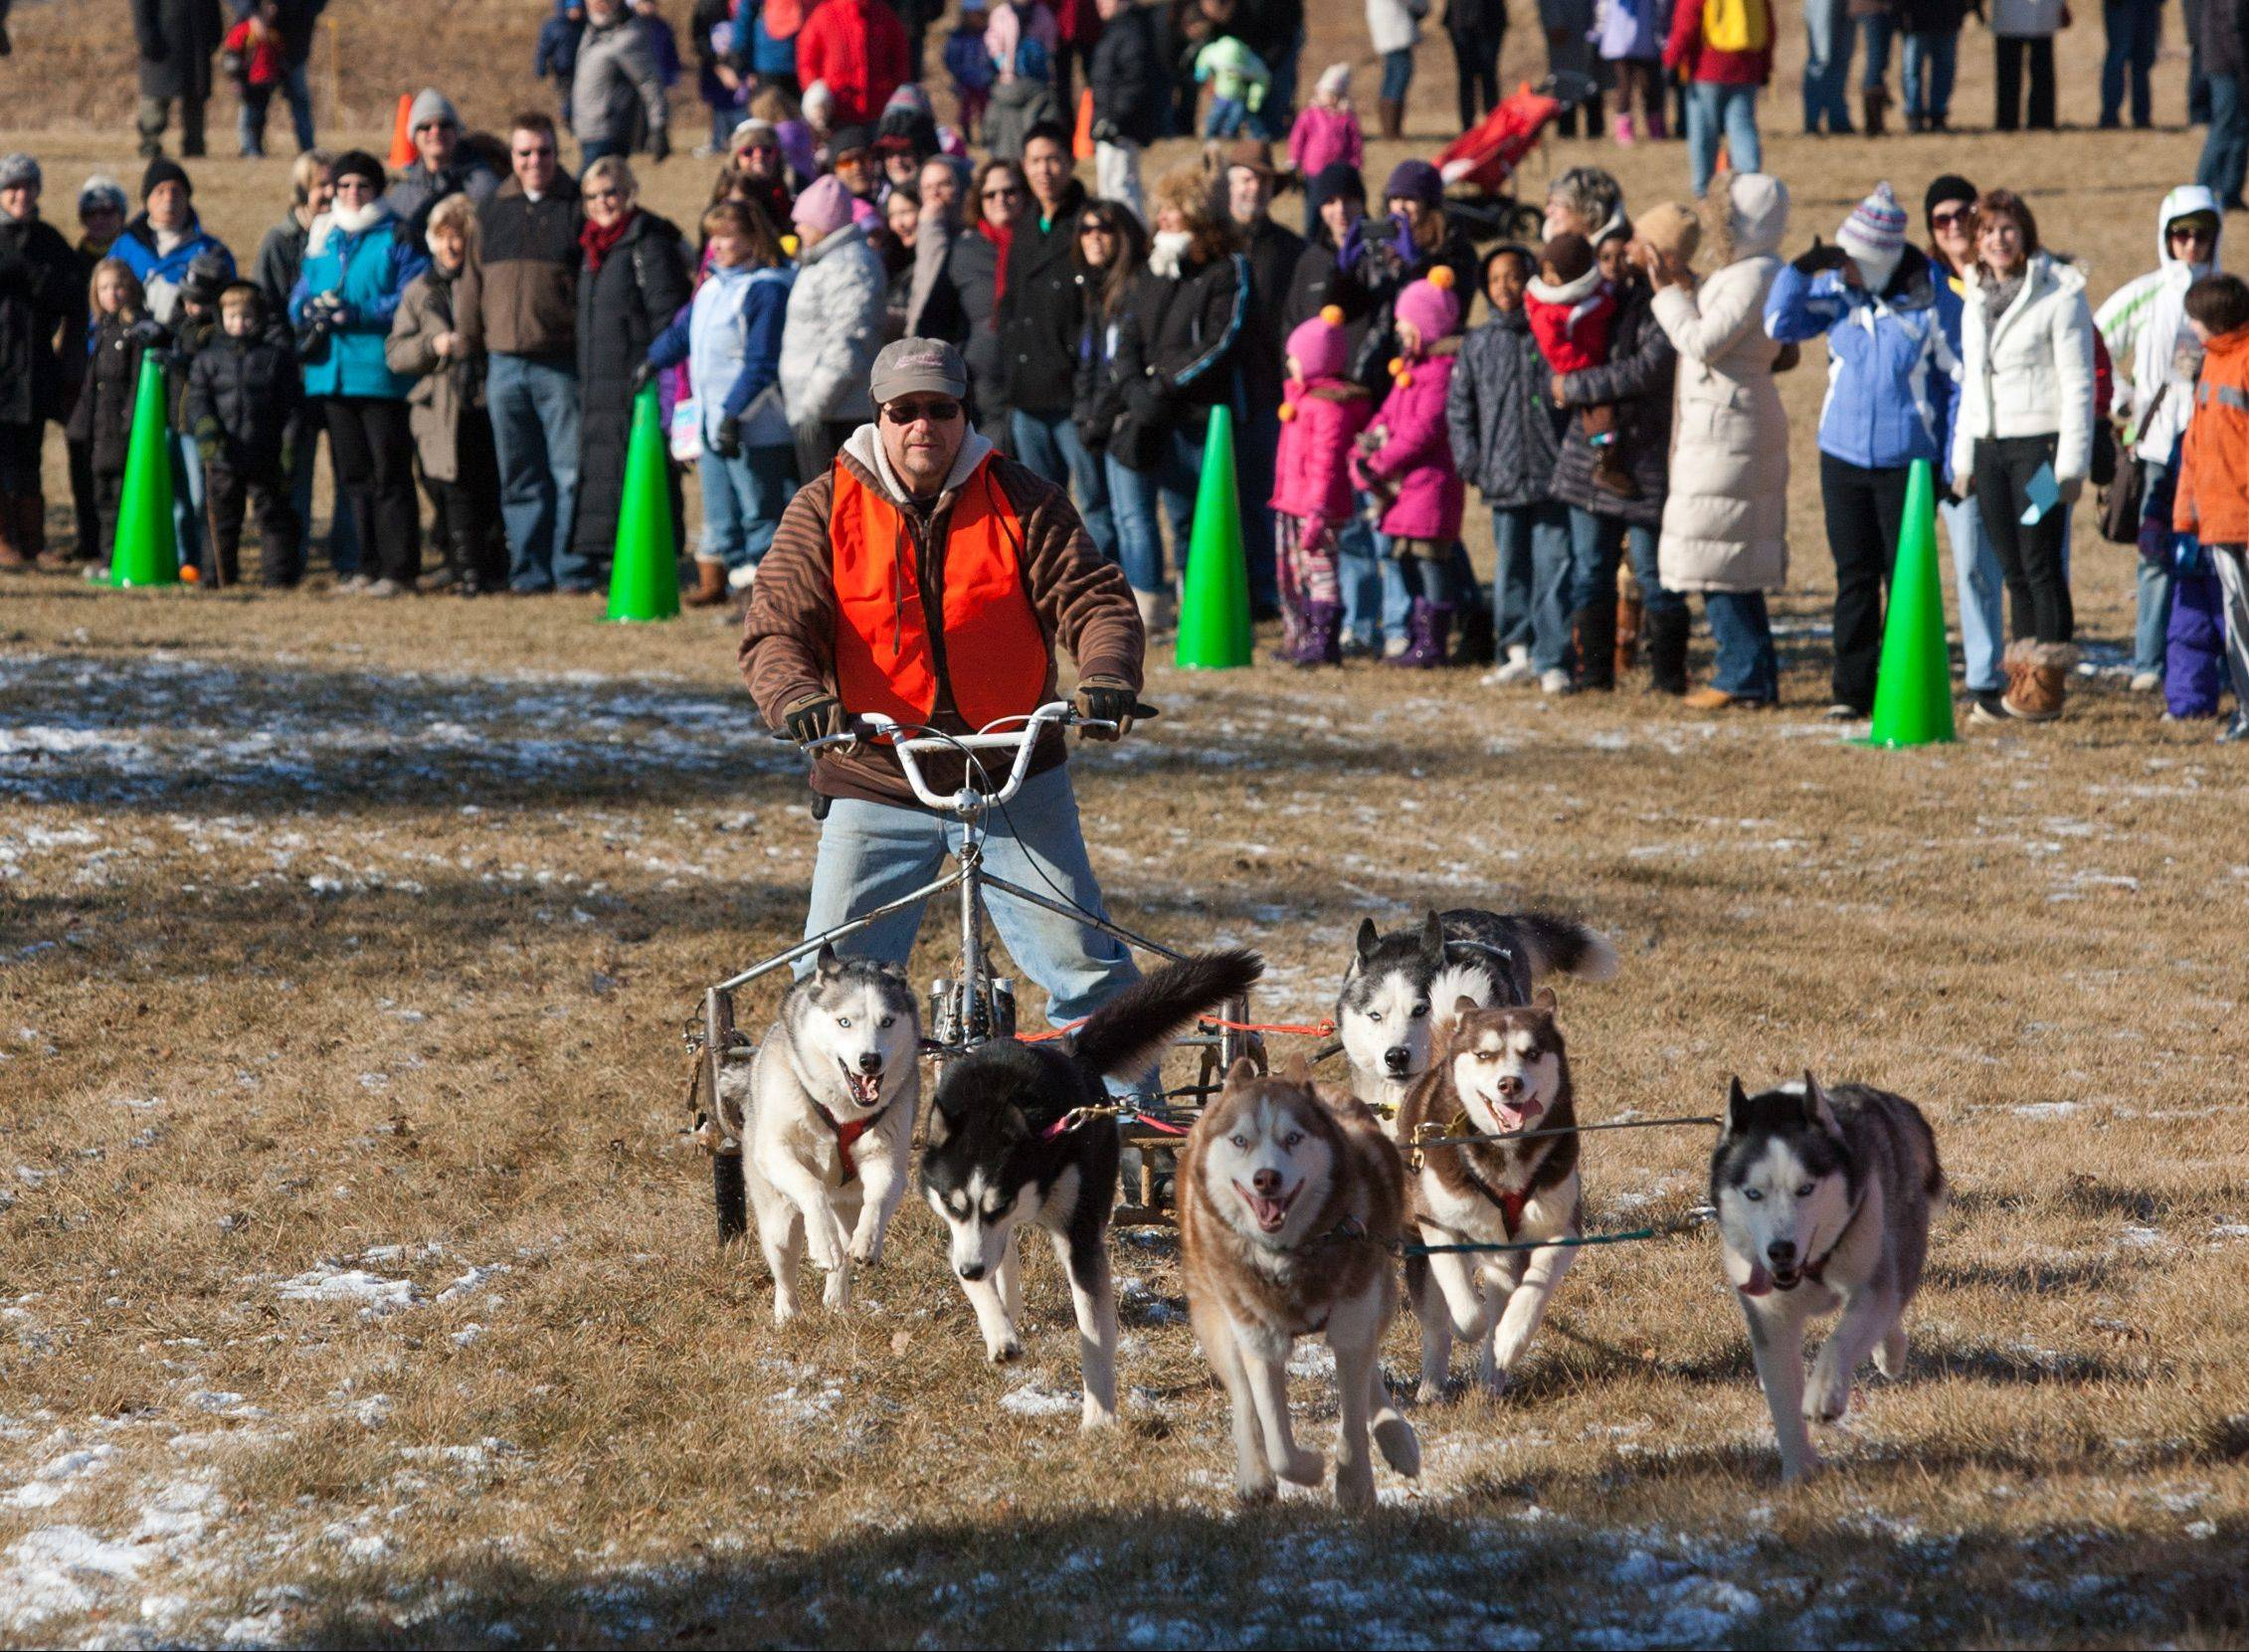 Mike Rawaillot guides his pack Saturday as the Morton Arboretum sponsors its annual �Husky Heroes� event in Lisle. Hundreds attend the event each year to watch dog sledding demonstrations and learn about Siberian huskies.